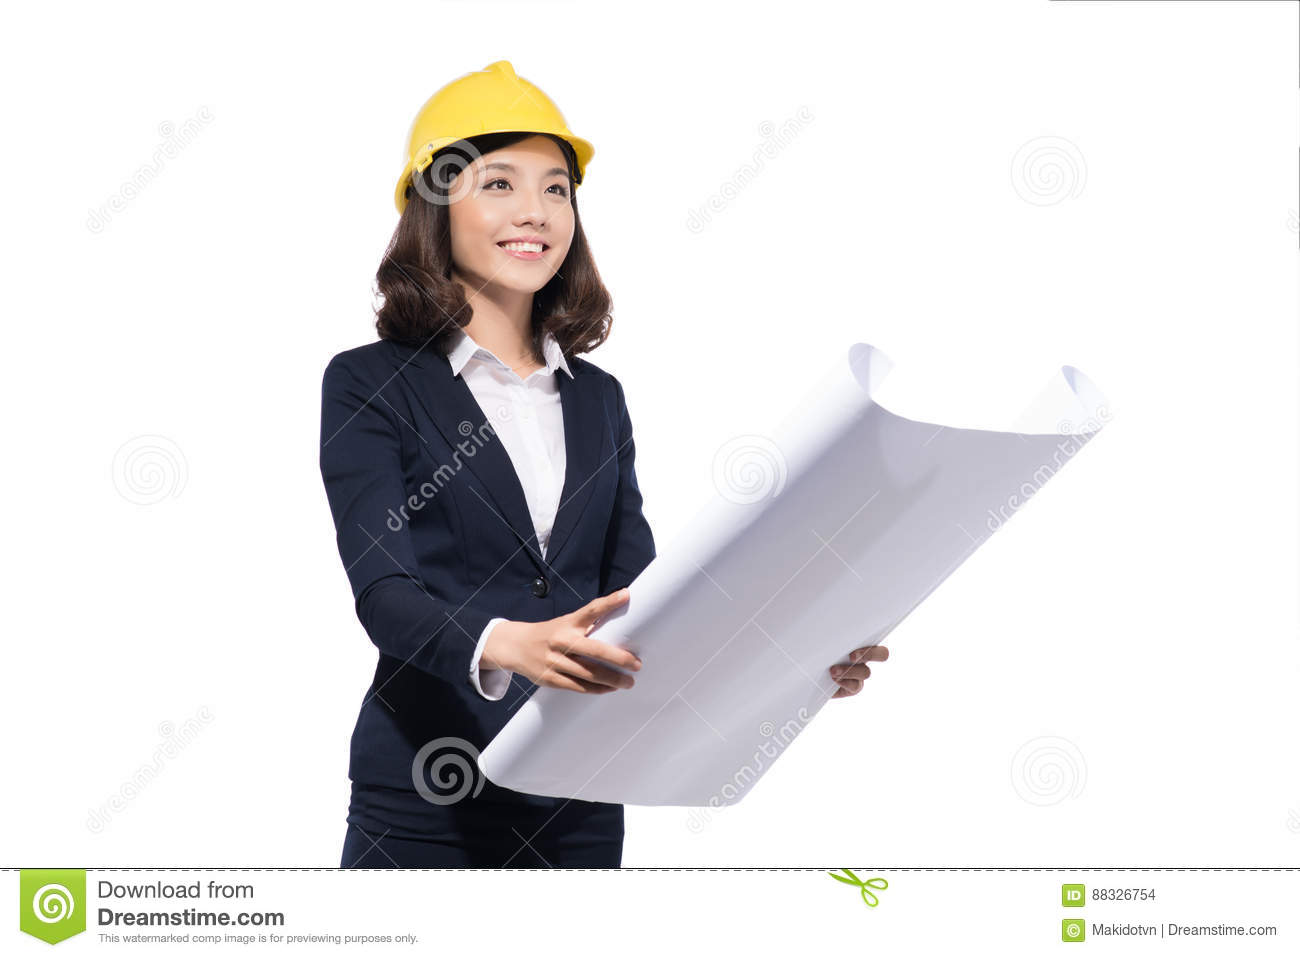 Architect Student portrait of architect student woman with blueprints protect wear